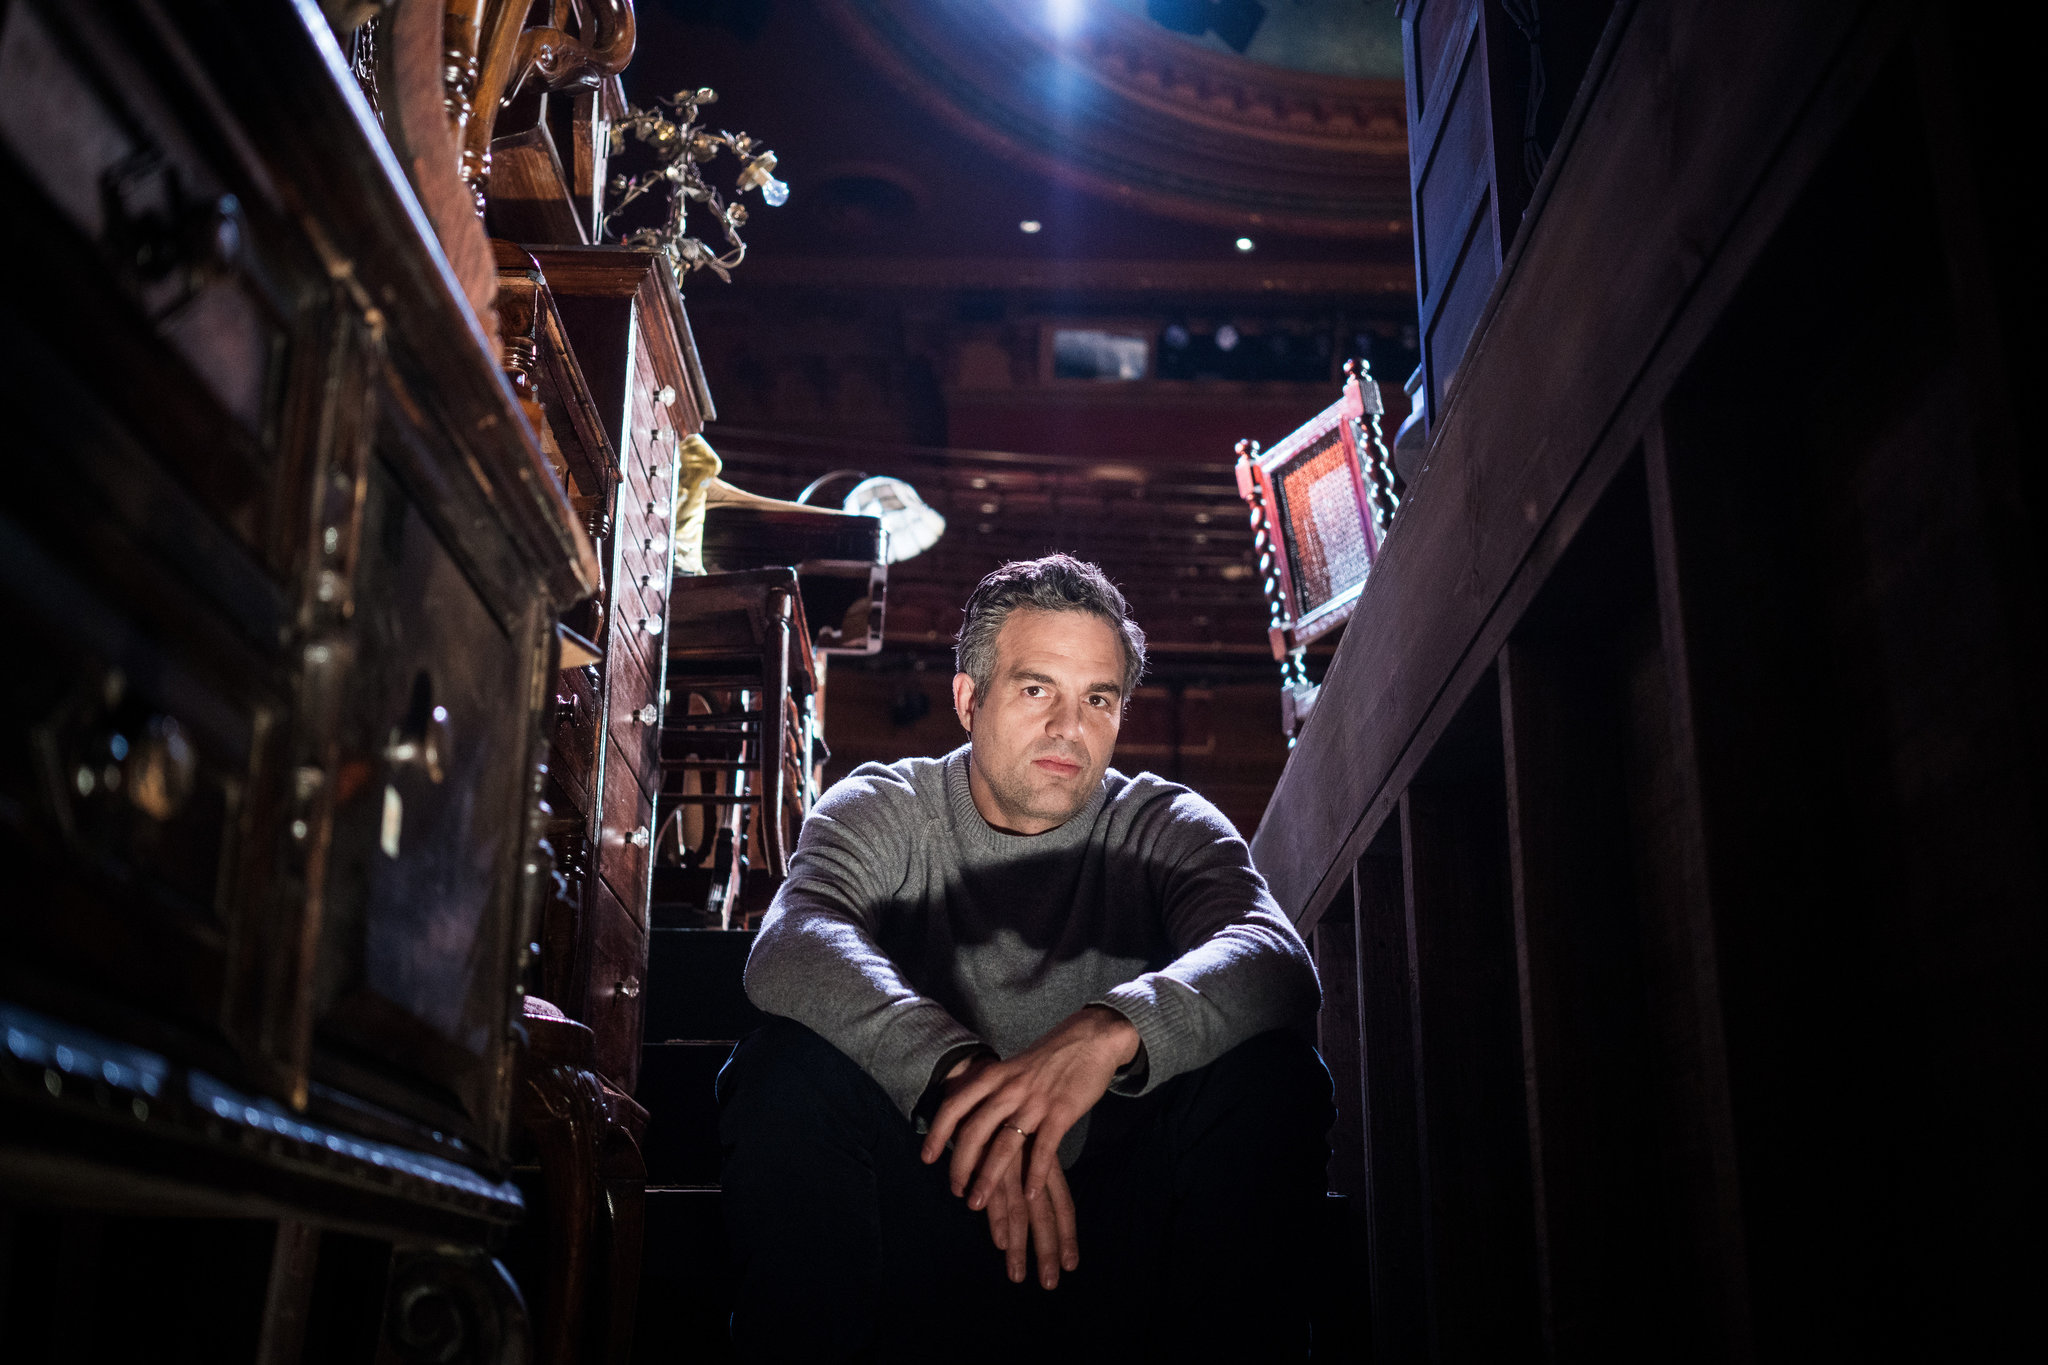 Mark Ruffalo at the American Airlines Theater. CreditDamon Winter/The New York Times